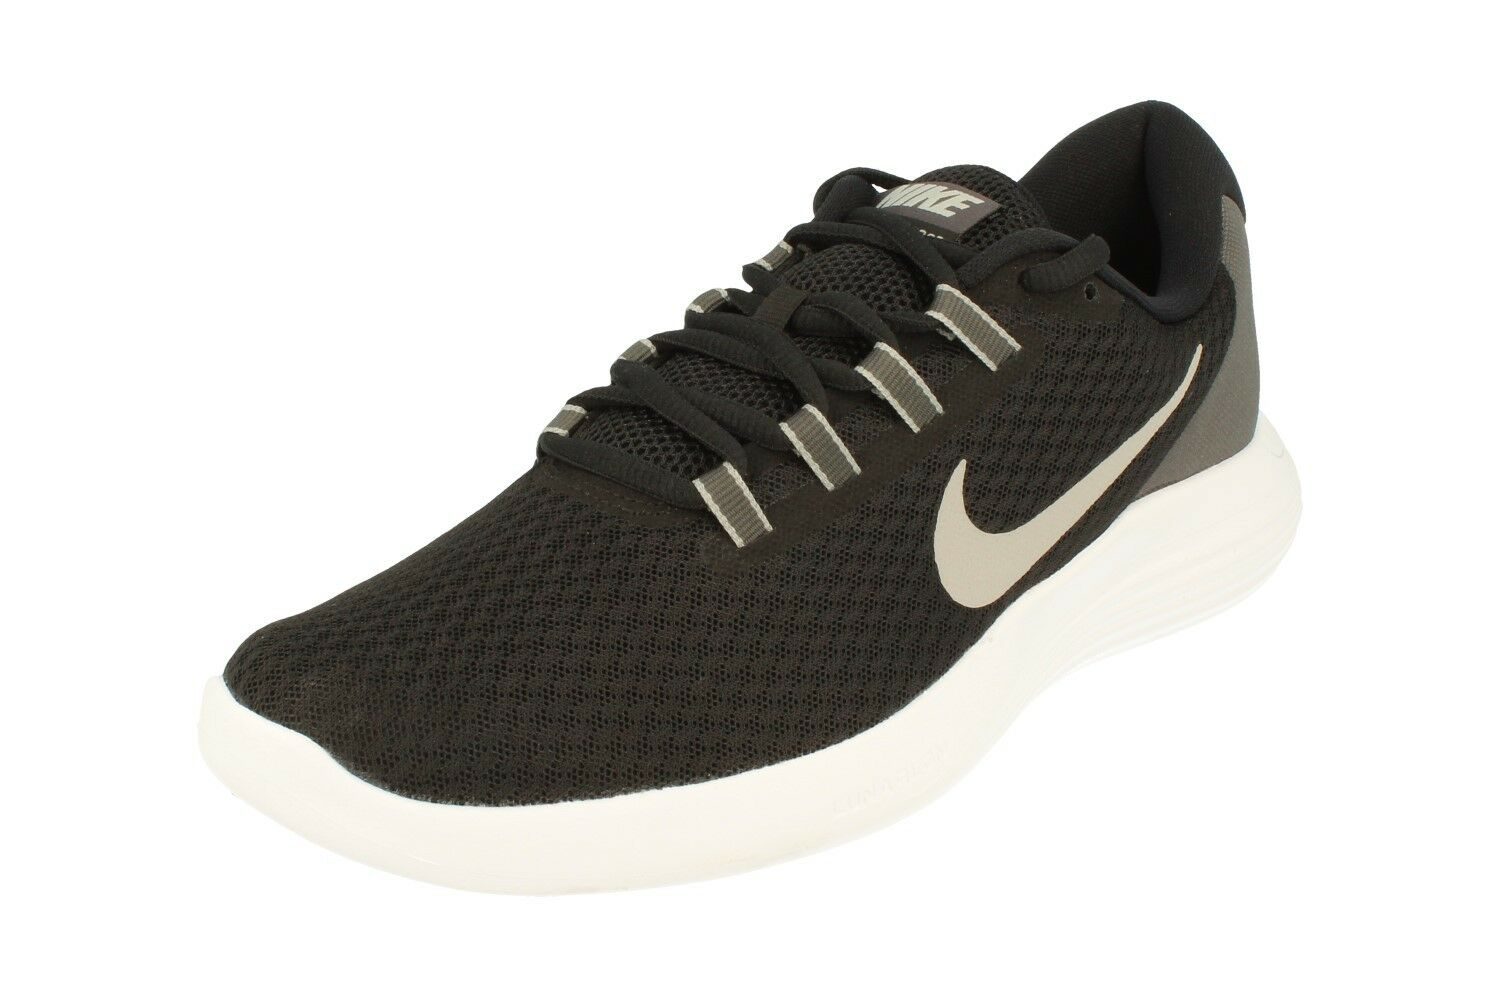 Nike Lunarconverge Mens Running Trainers 852462 Sneaker Shoe 001